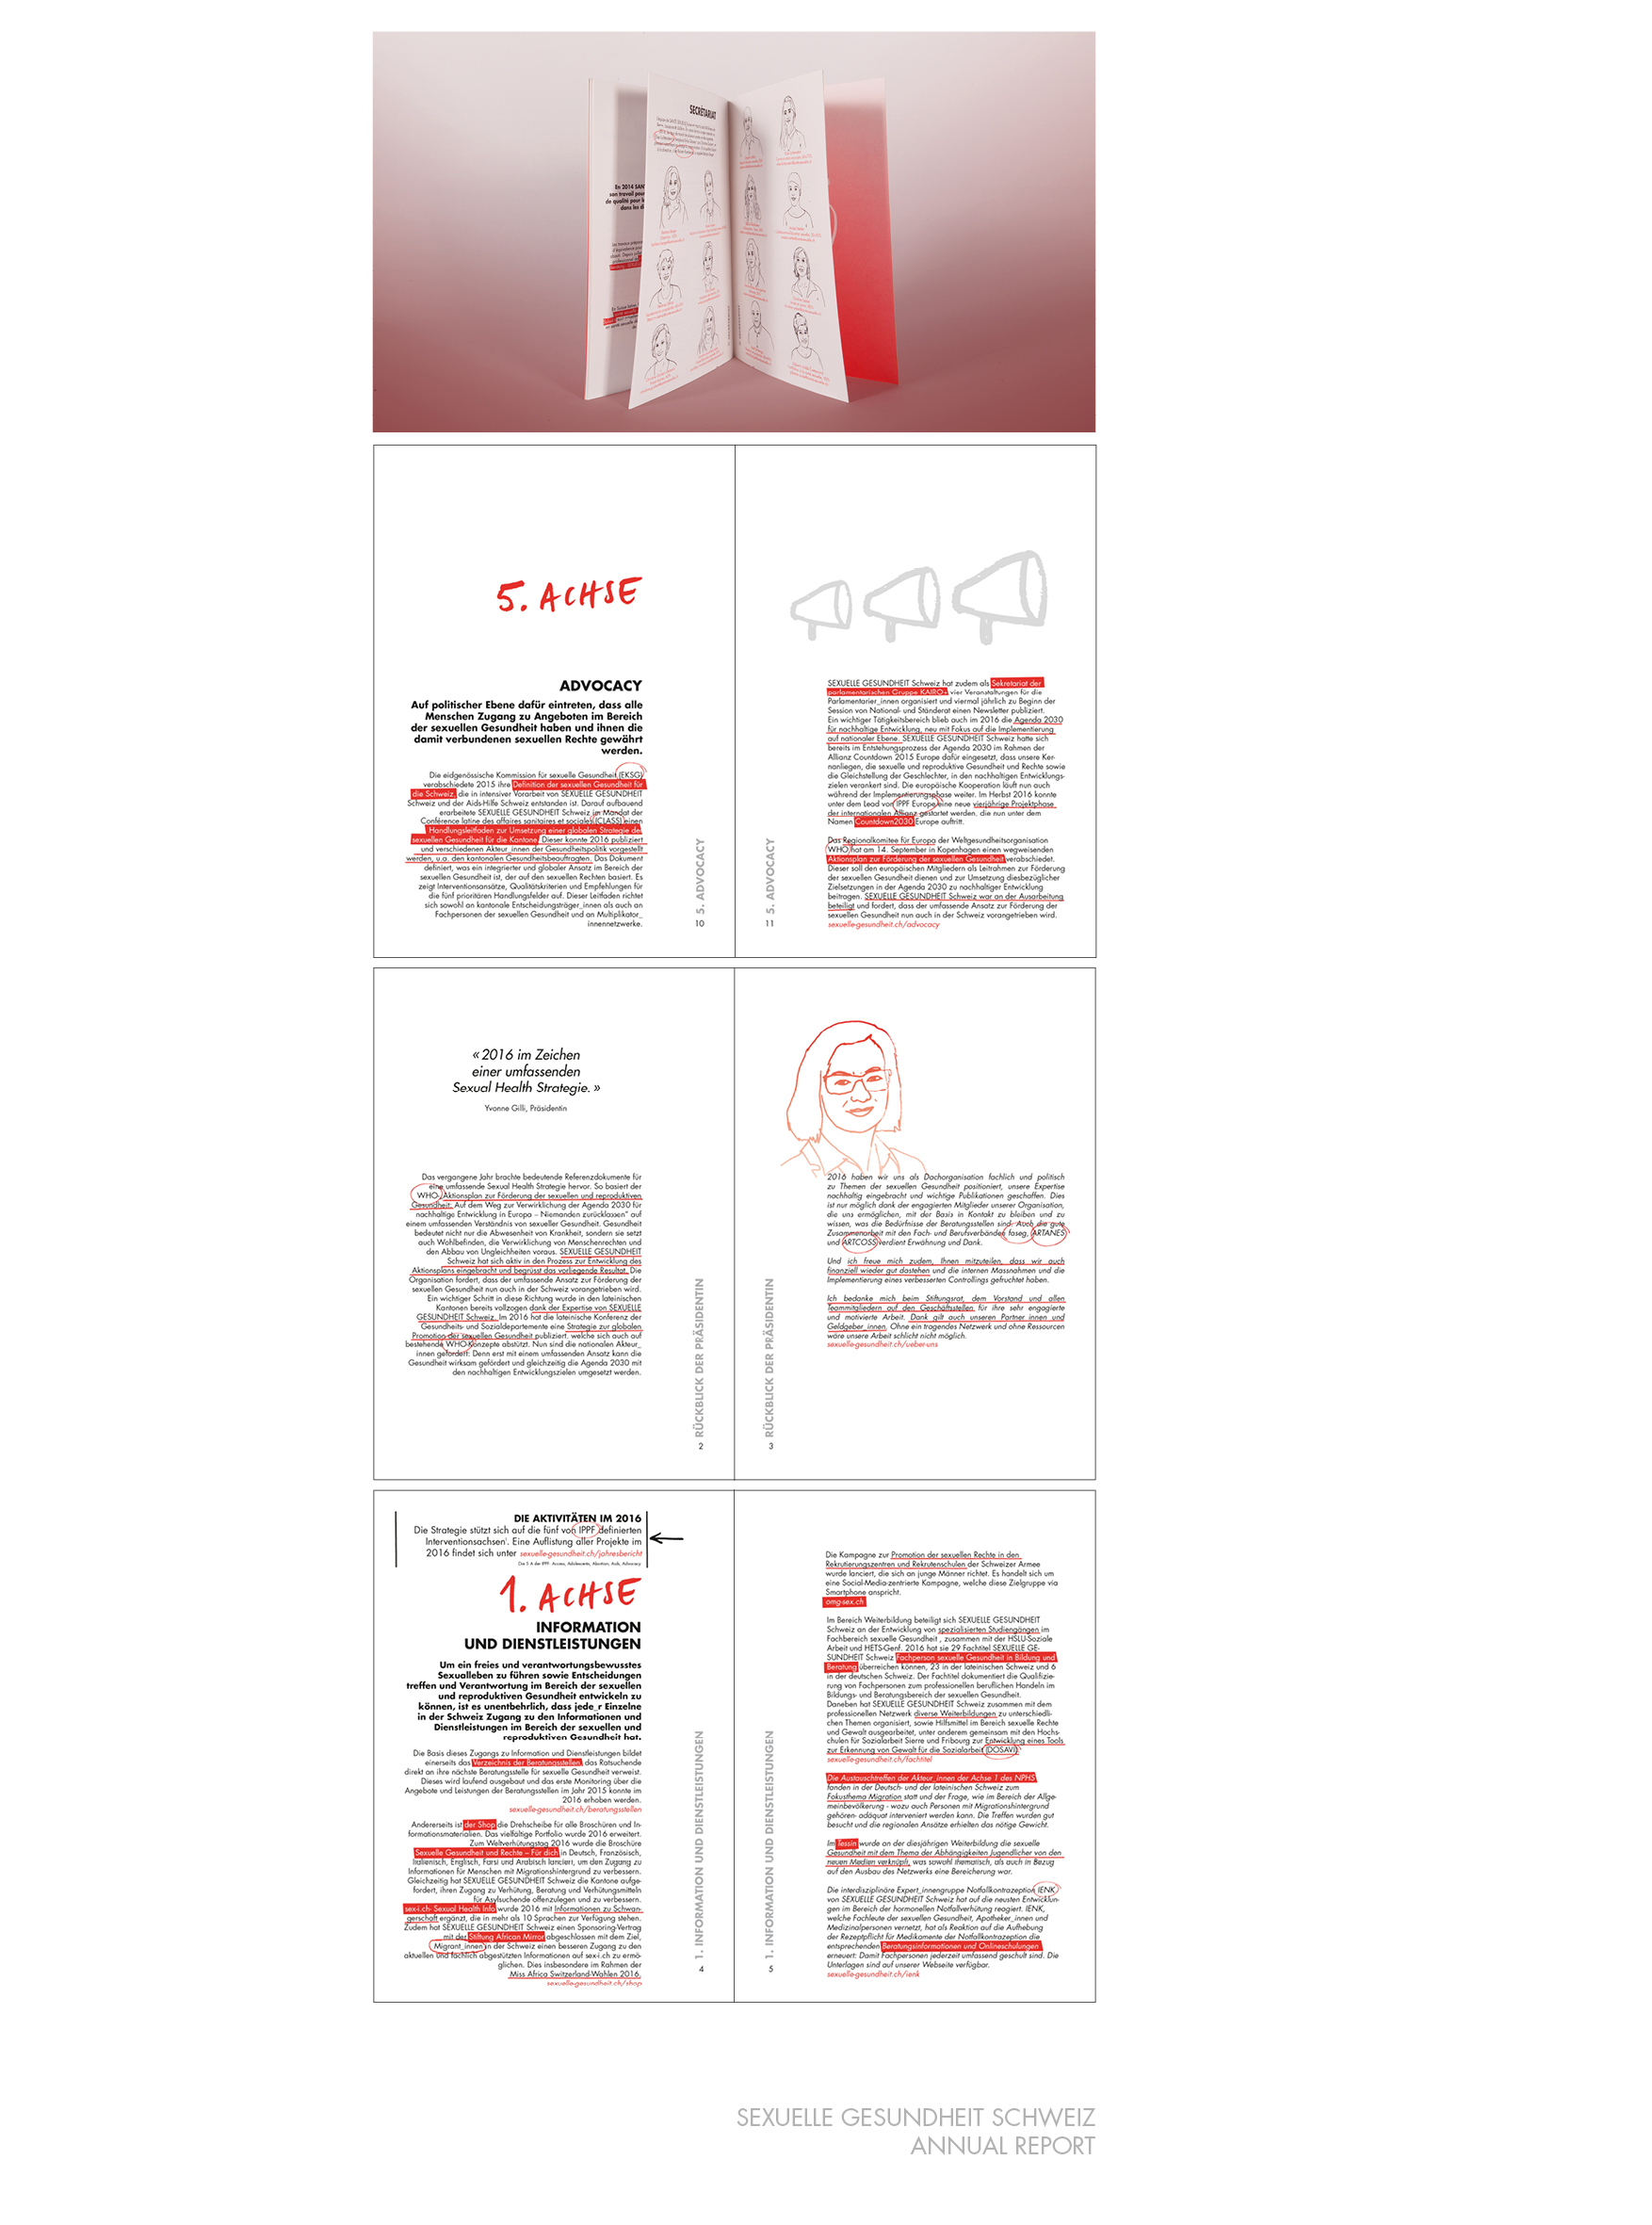 portfolio-graphicdesign-straightlayout9.jpg